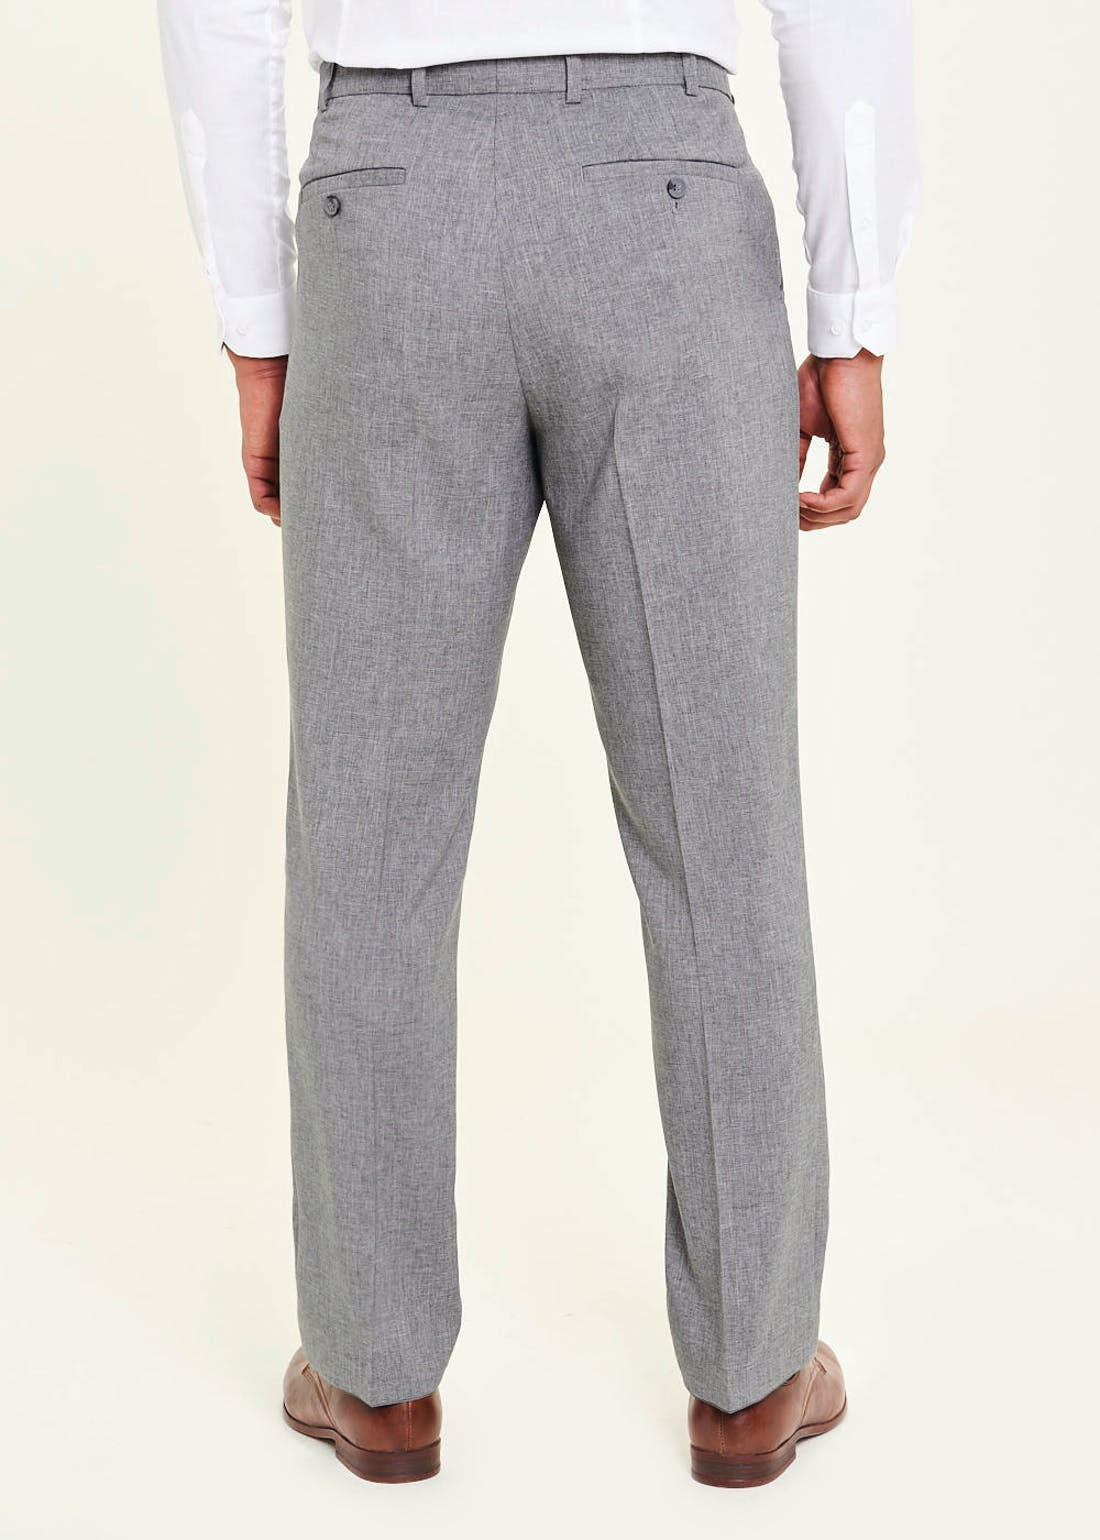 Taylor & Wright Regular Fit Flexi Waist Trousers